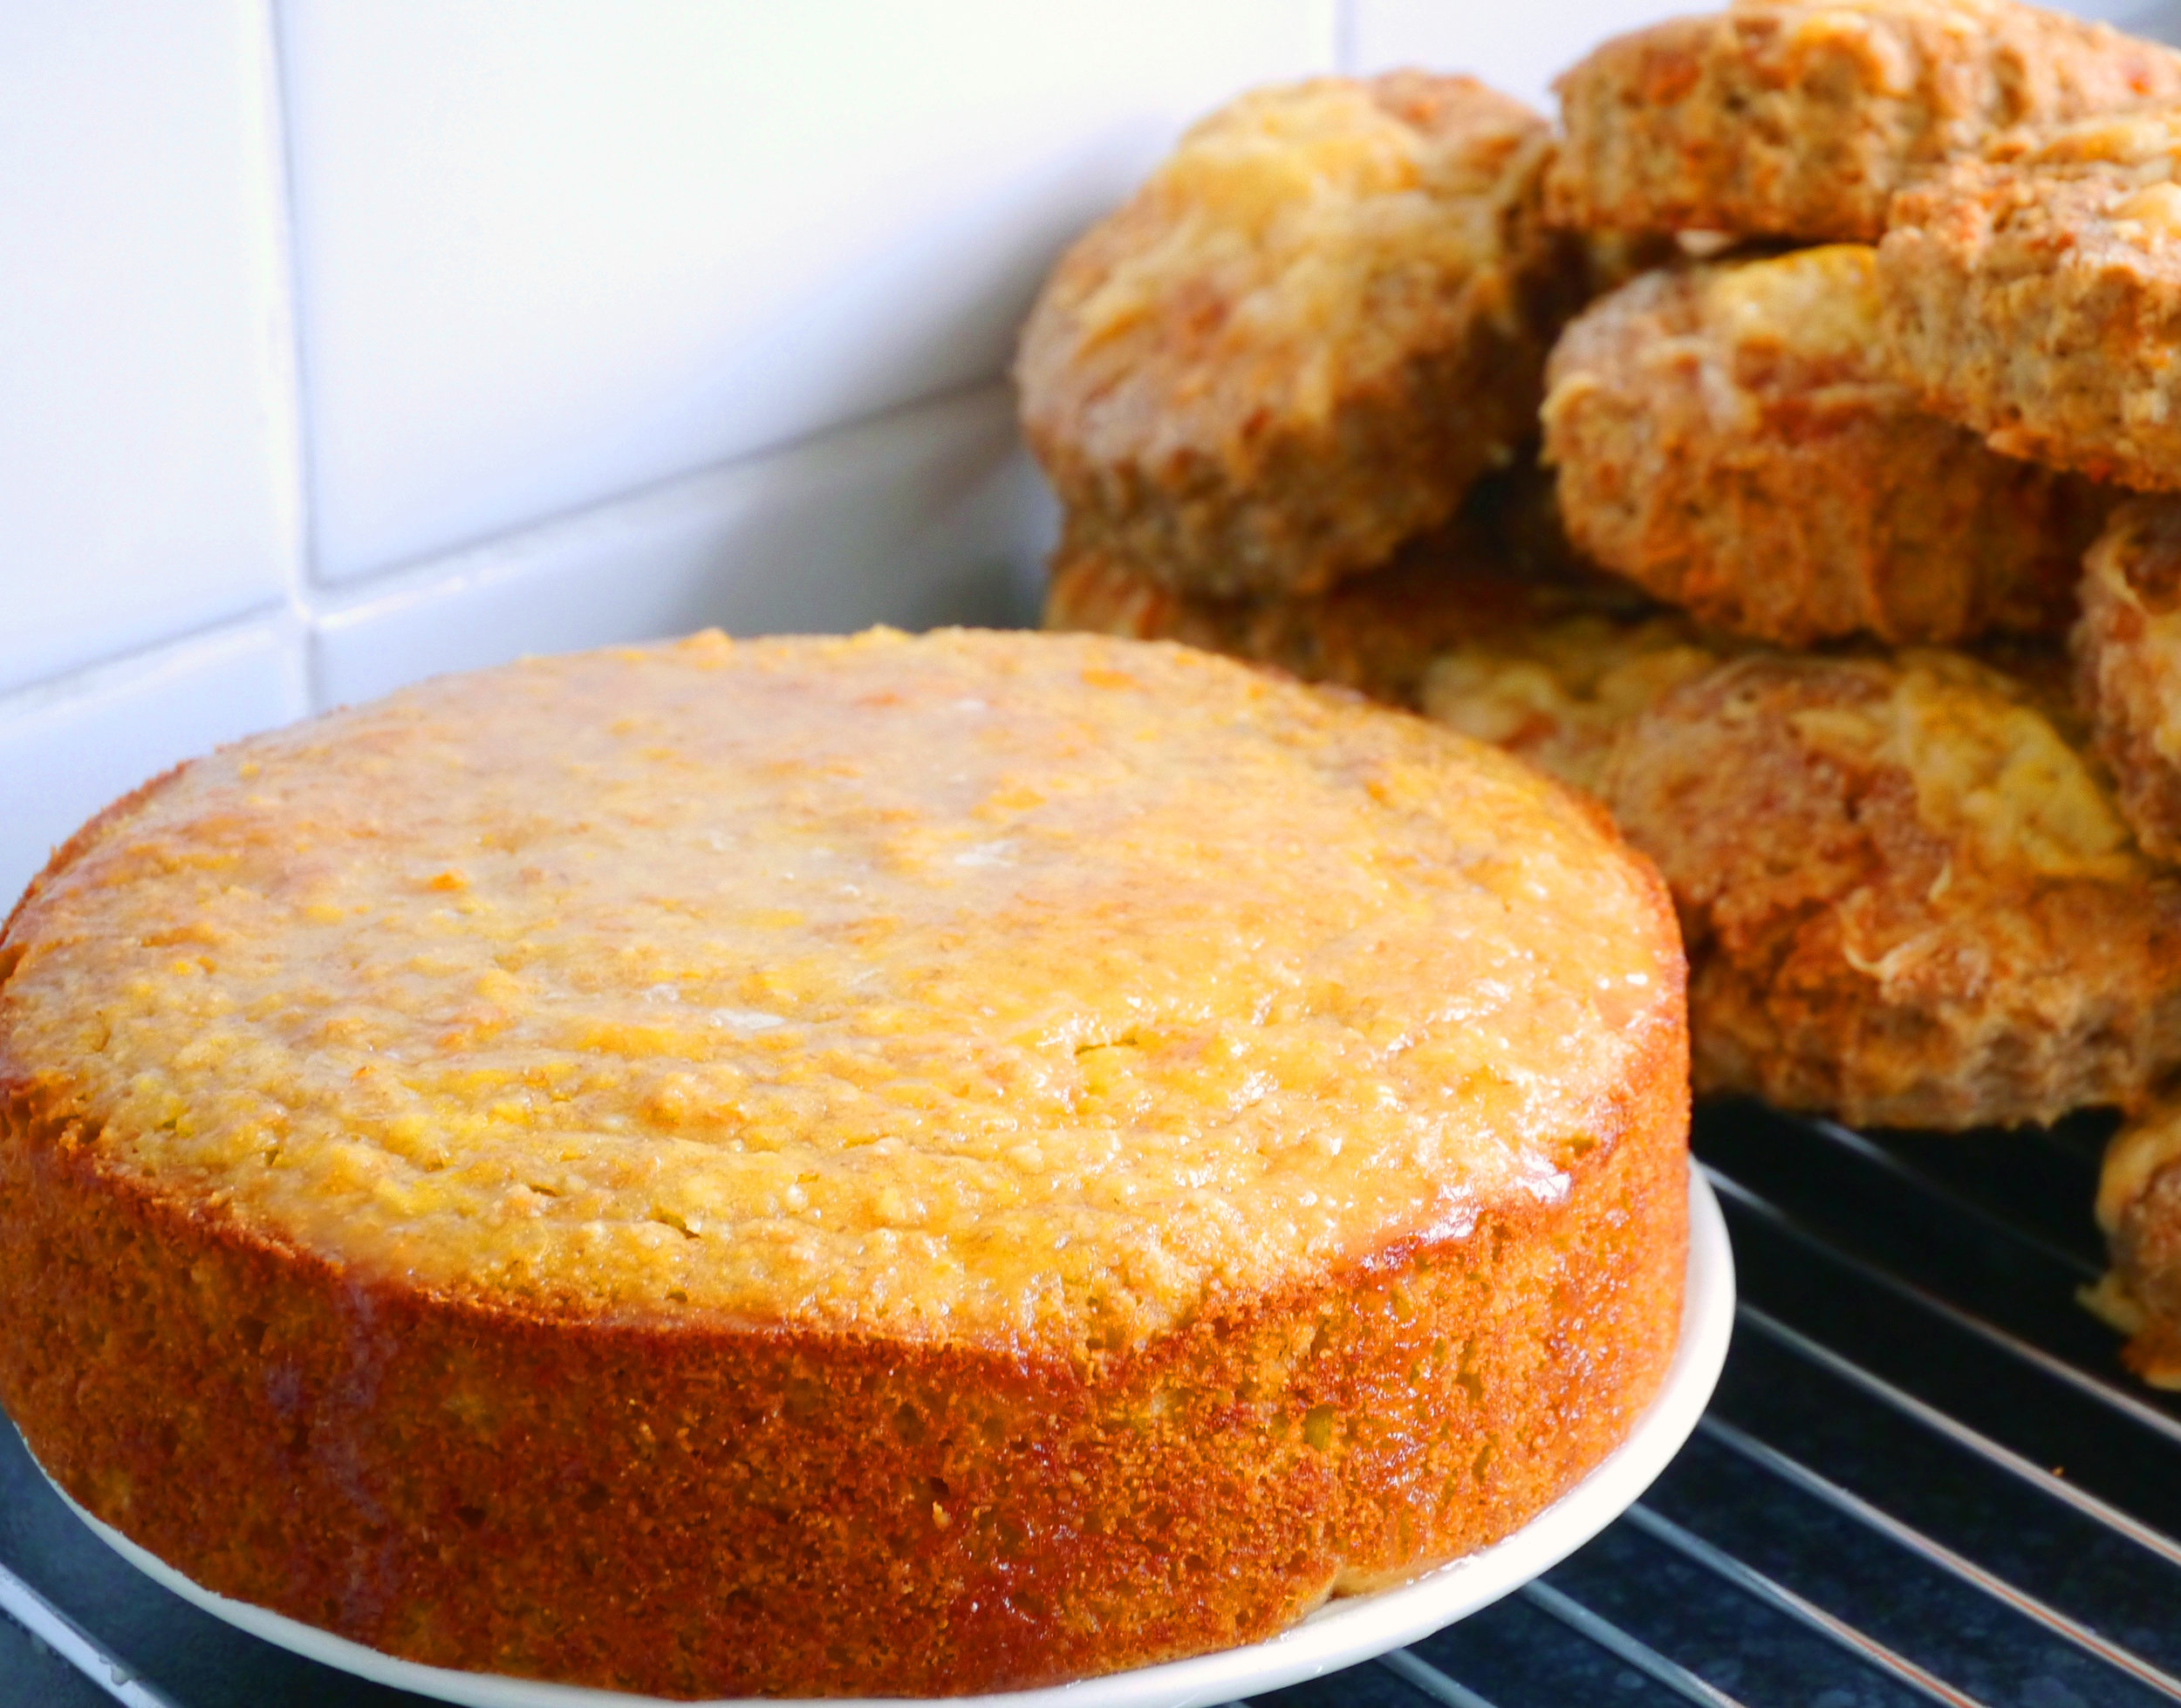 Back at home and it's family tea Sunday. I'm actually able to potter about baking without the awful encumbrance of a crutch so have had a baking splurge. Some easy sourdough cheese scones and a new Orange and Almond cake recipe. The interesting thing about this cake is that you poach a whole orange for about 30 mins in a pan of boiling water and then blitz it in a food processor until you have a puree. The eggs and sugar are whipped until light and frothy and then the flour (I used spelt) and ground almonds and baking powder are folded into the eggy mix, followed by the orange puree. So easy to do. It's then baked for about 40 mins at 160C until the top is golden and springy. After cooling for a while I mixed some icing sugar with clementine juice and drizzled over the top. 1 orange 3 eggs 140g castor sugar 85g flour (plus 1tsp baking powder if plain flour) 150g ground almonds